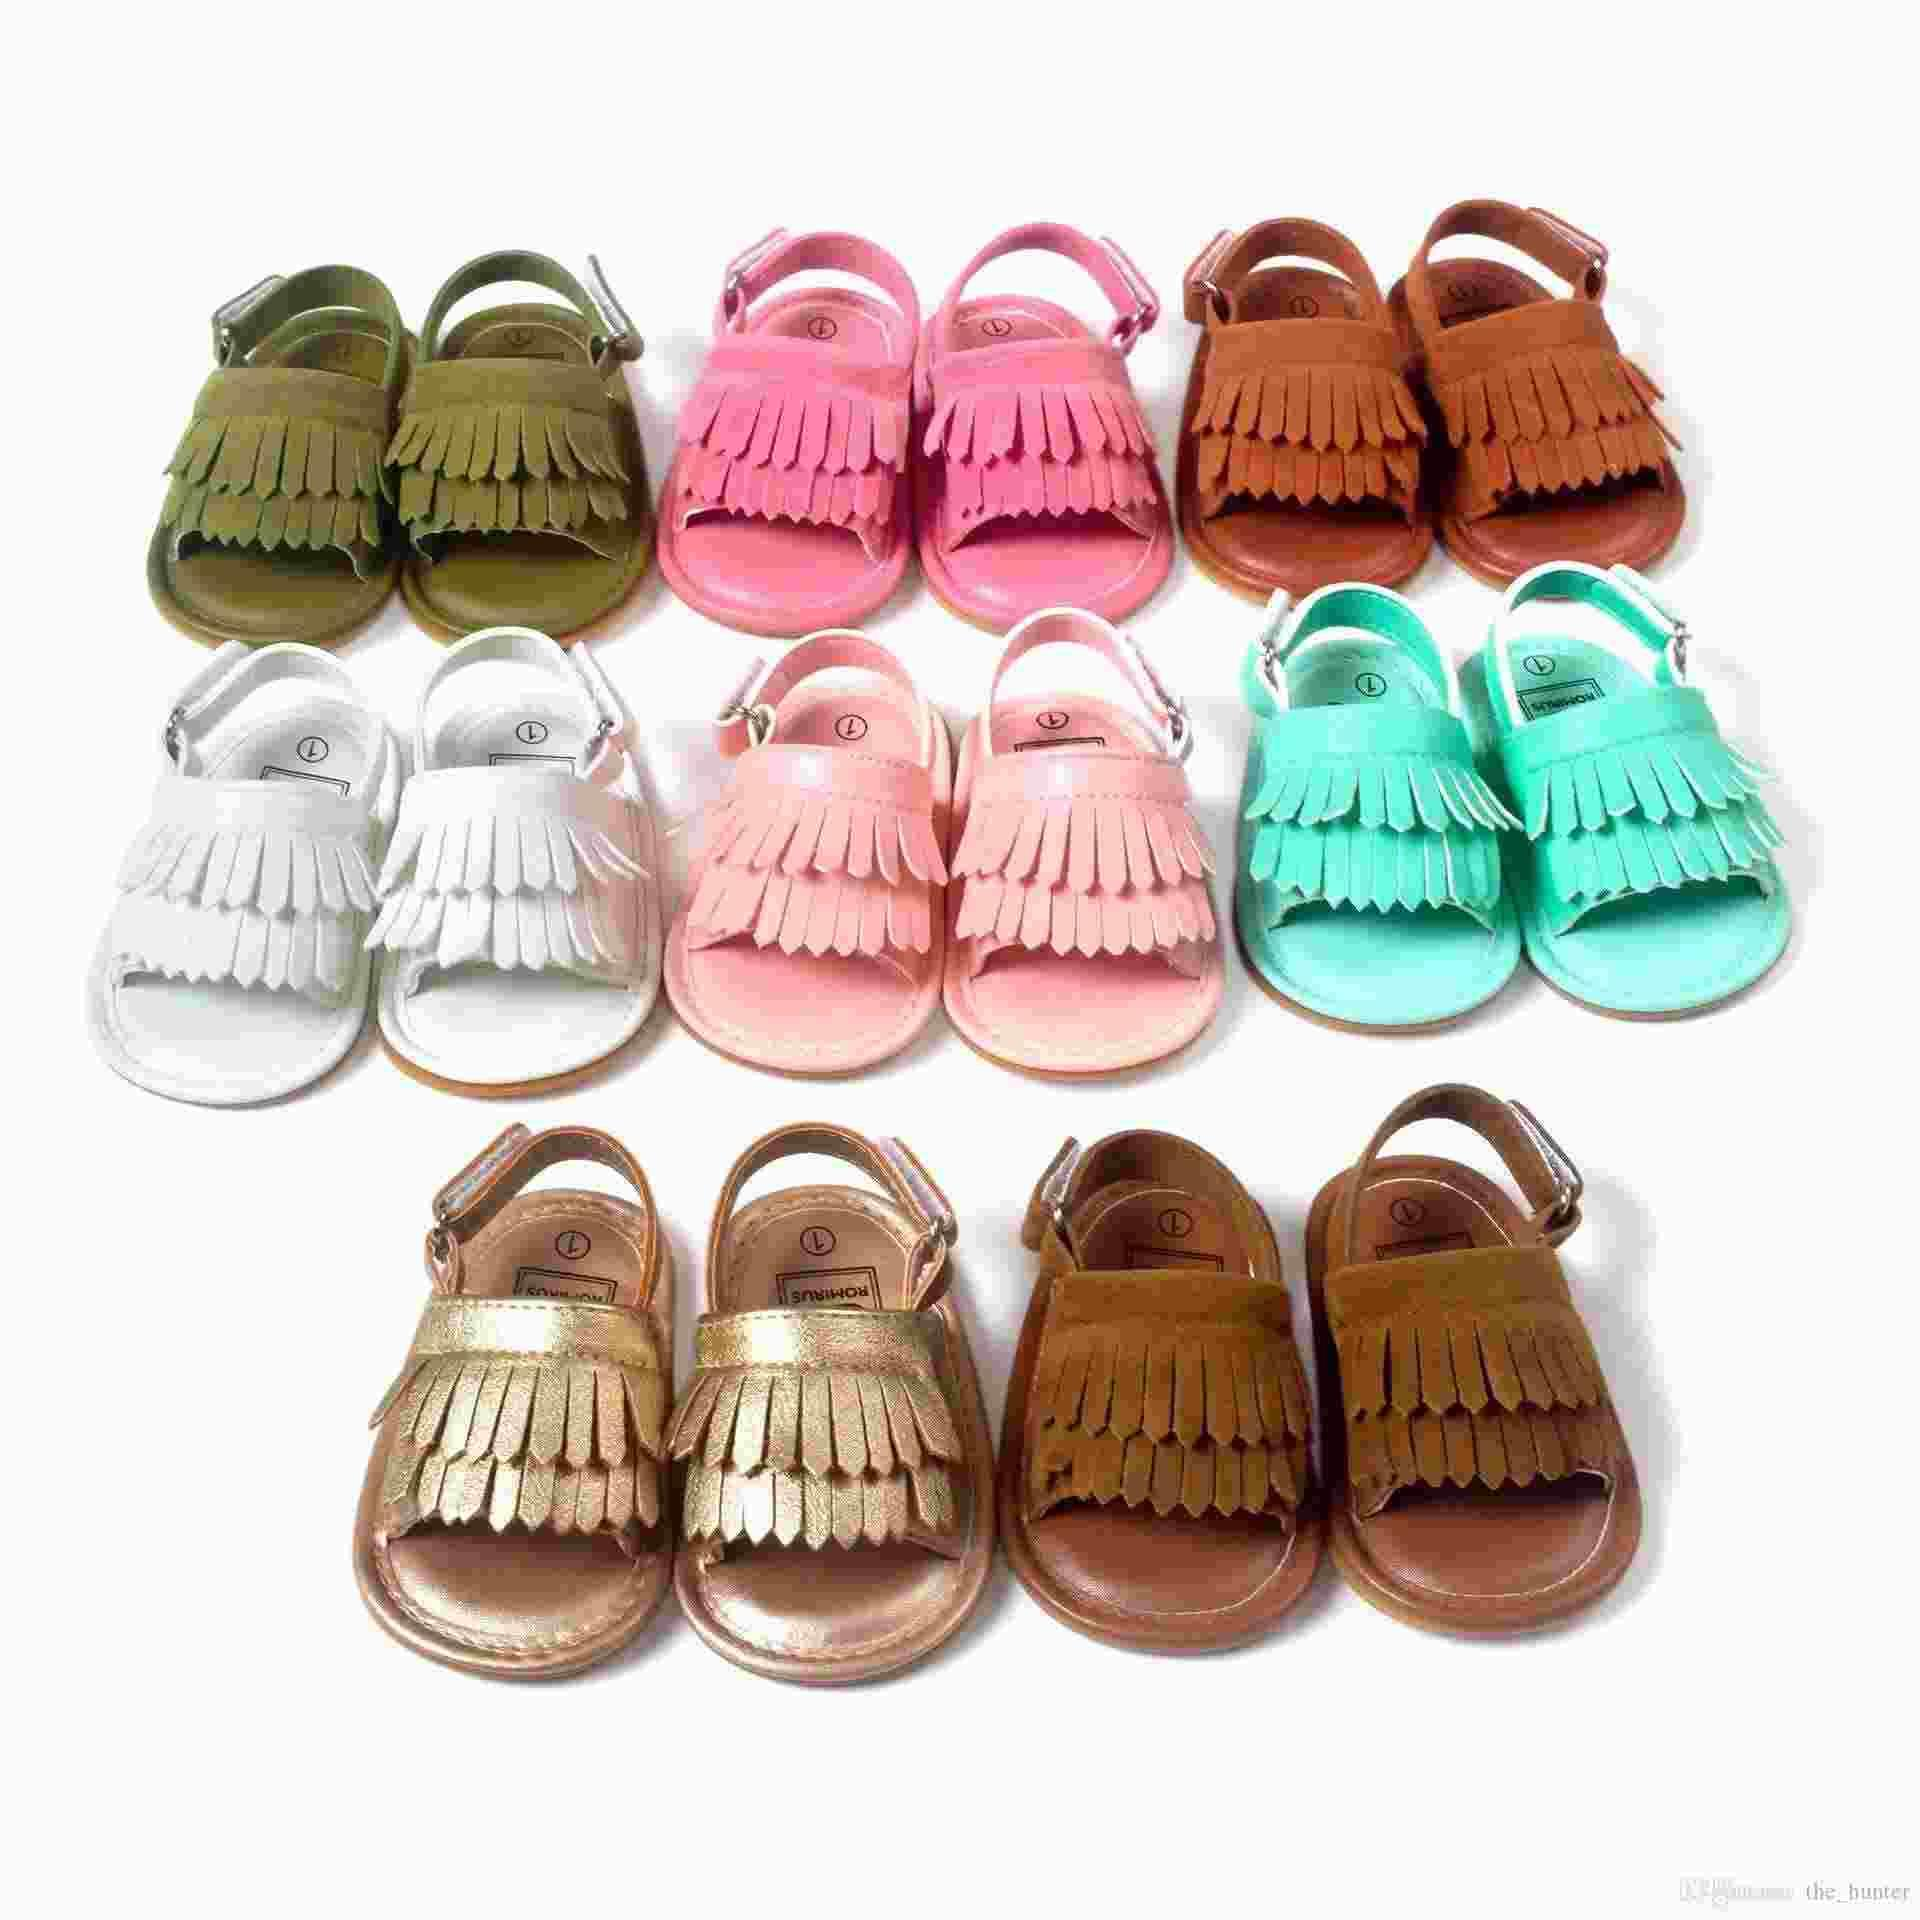 ff274a3f4dbe6d 2019 Kid Tassel Shoe Sandal Shoes Baby Shoes Children Sandals Infant Shoes  Boys Girls Summer Sandals Kids Footwear Toddler Princess Sandals F364 From  ...